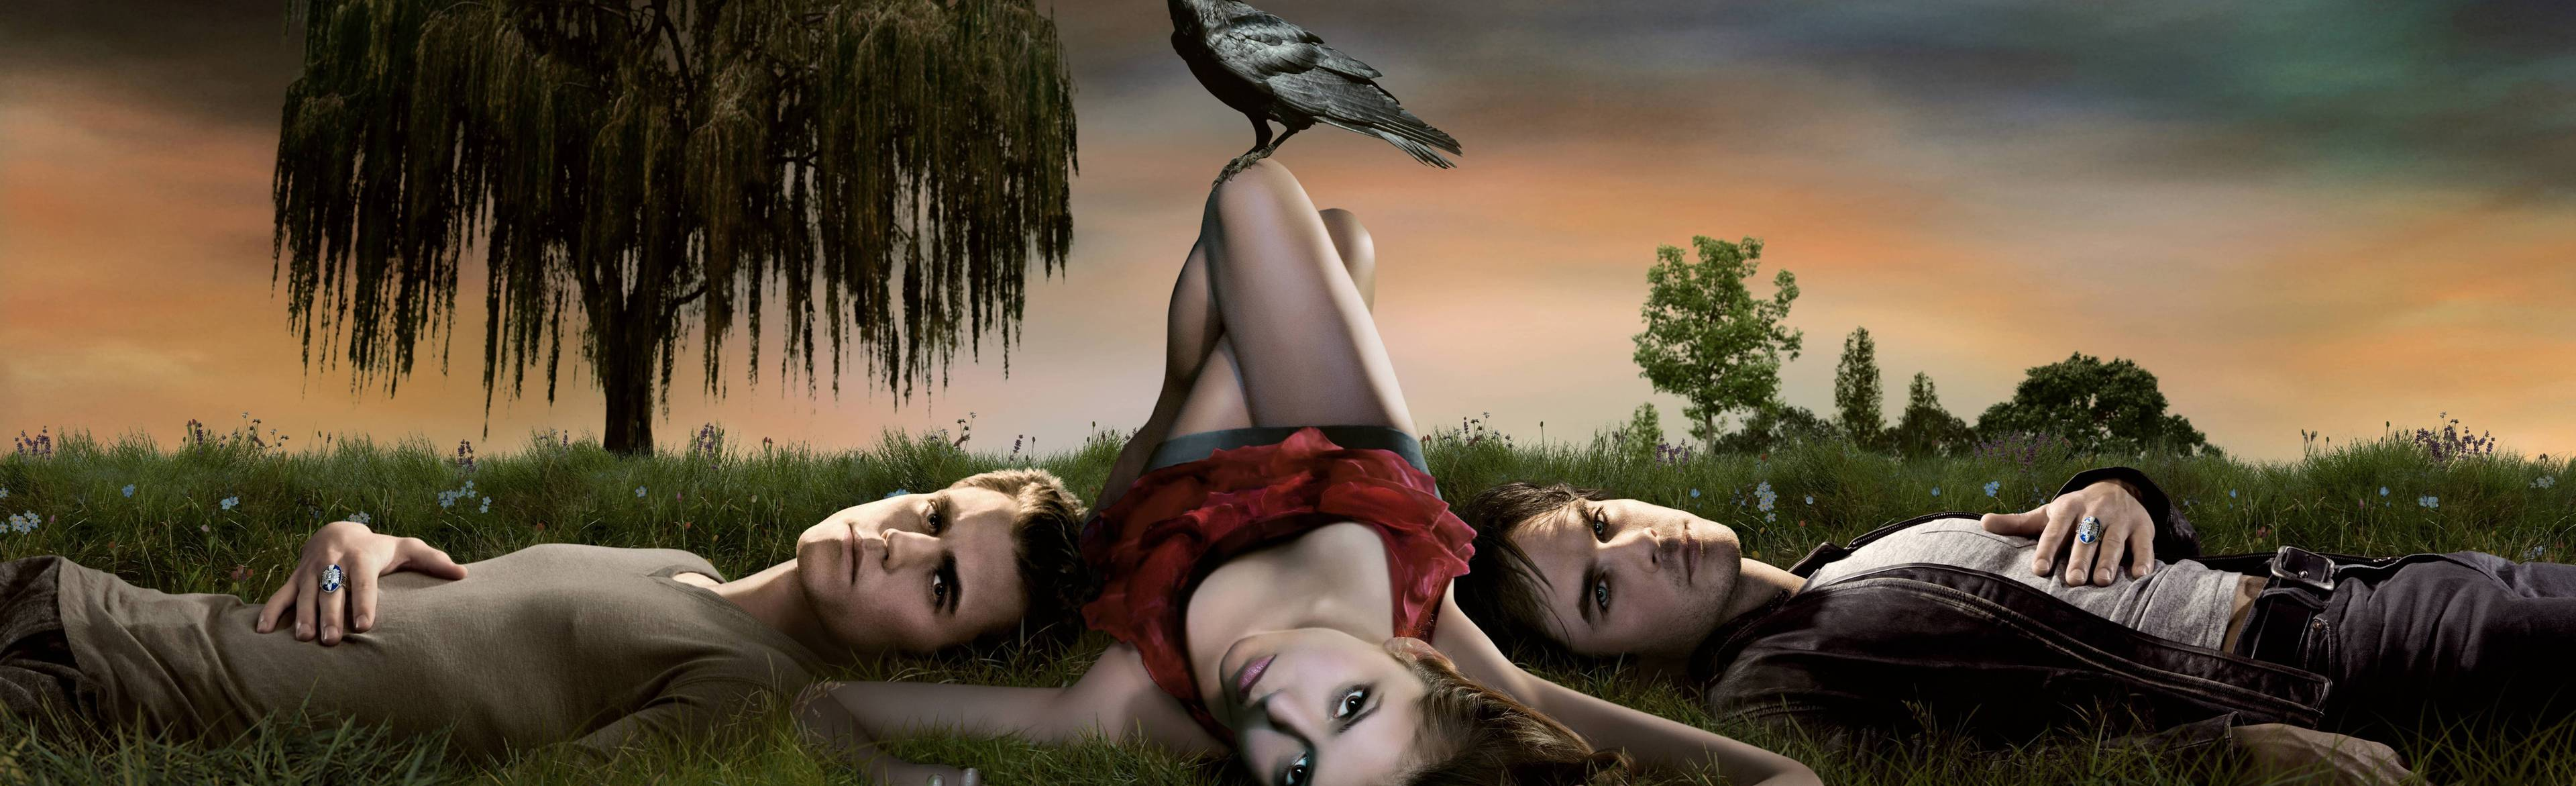 The Vampire Diaries Season 3 / Дневниците на Вампира Сезон 3 (2011)